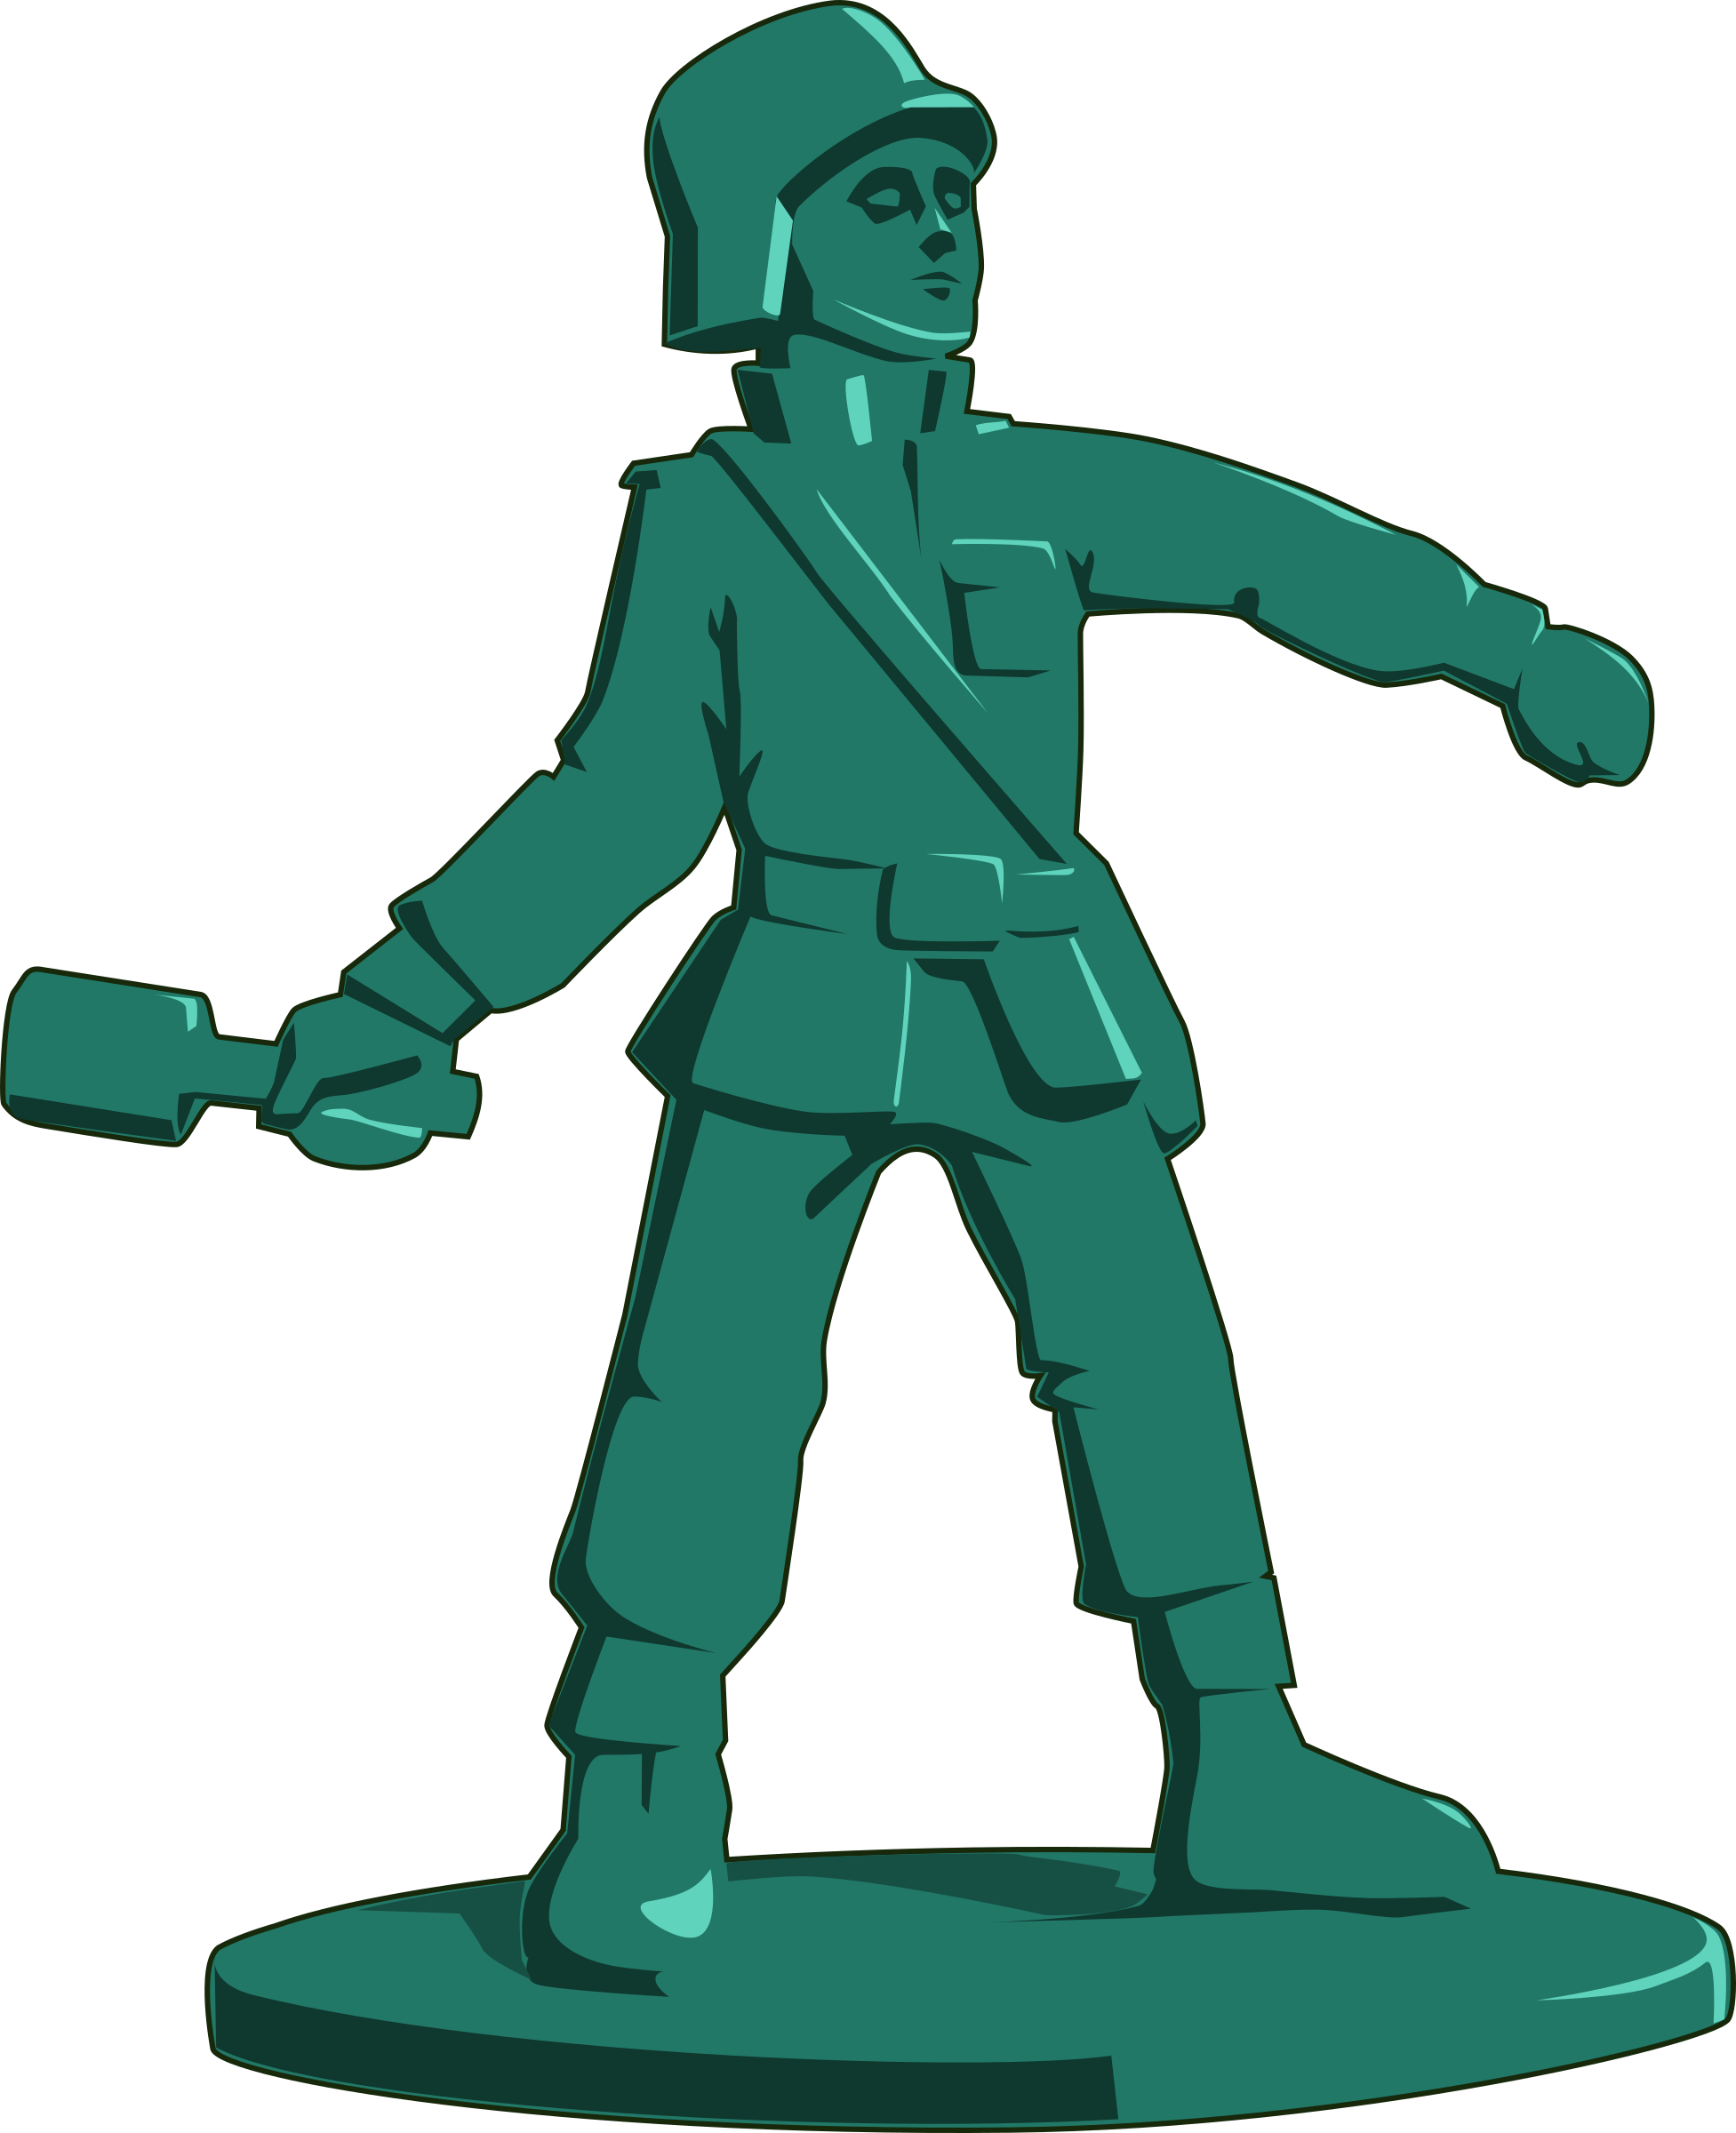 Soldier clipart serviceman. Cliparts for free